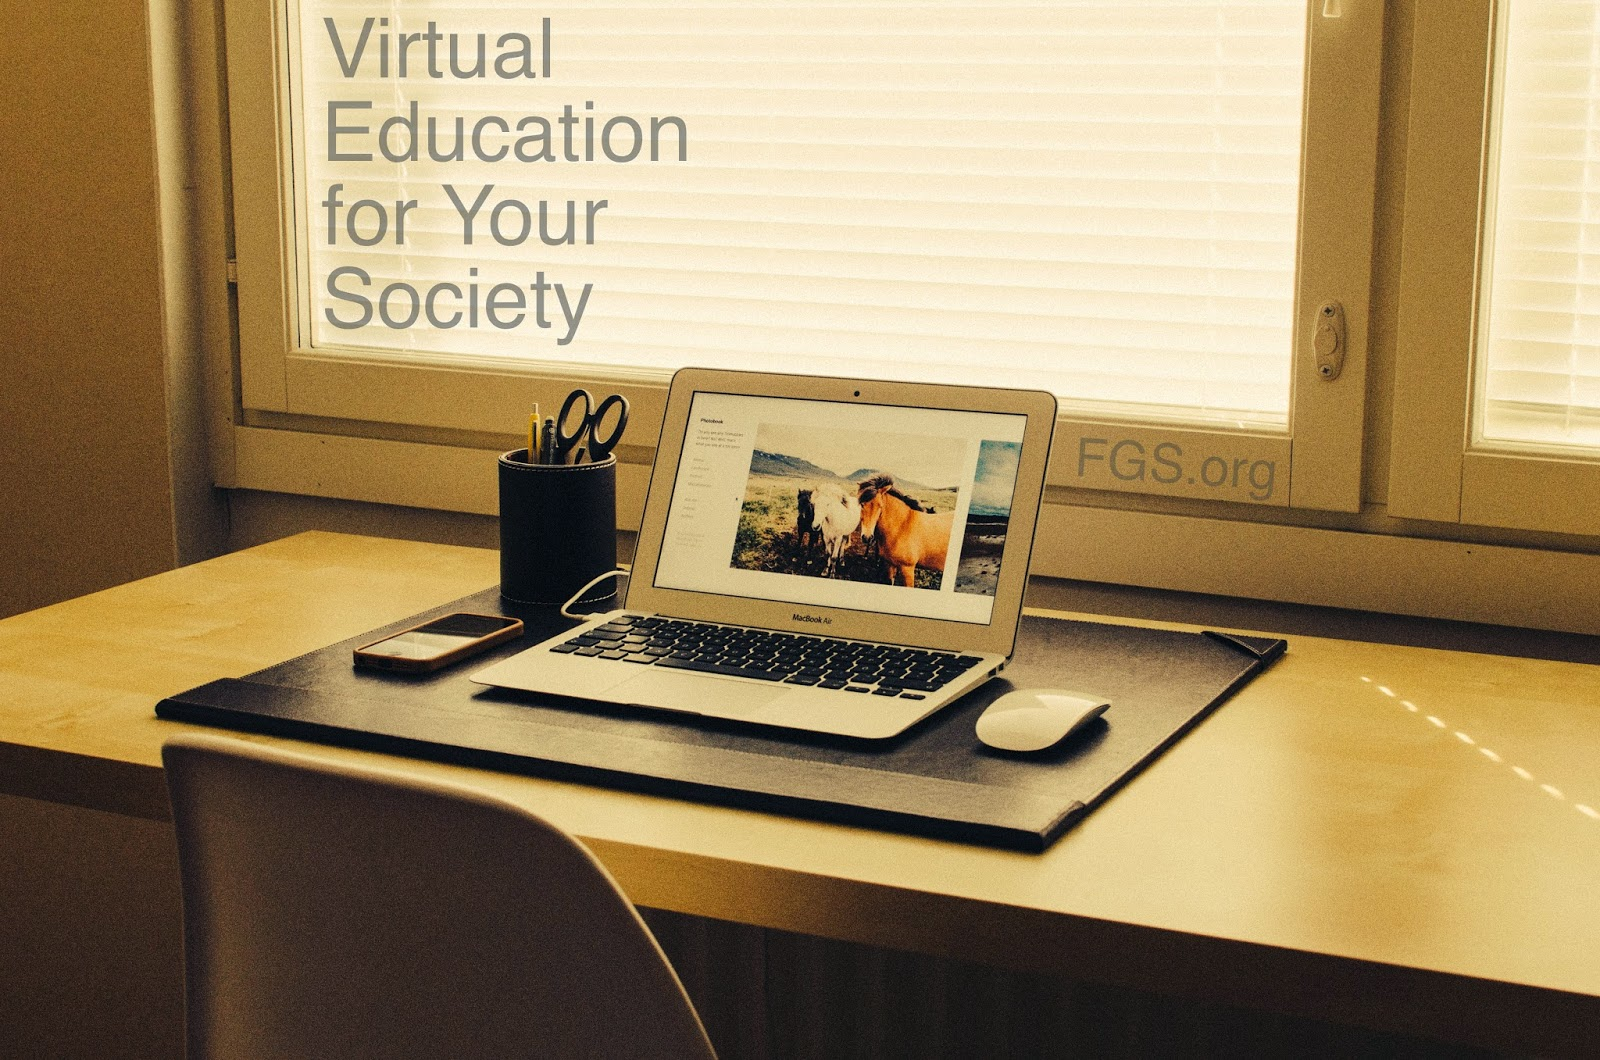 Genealogy Webinars - Virtual Education for Your Society via FGS.org